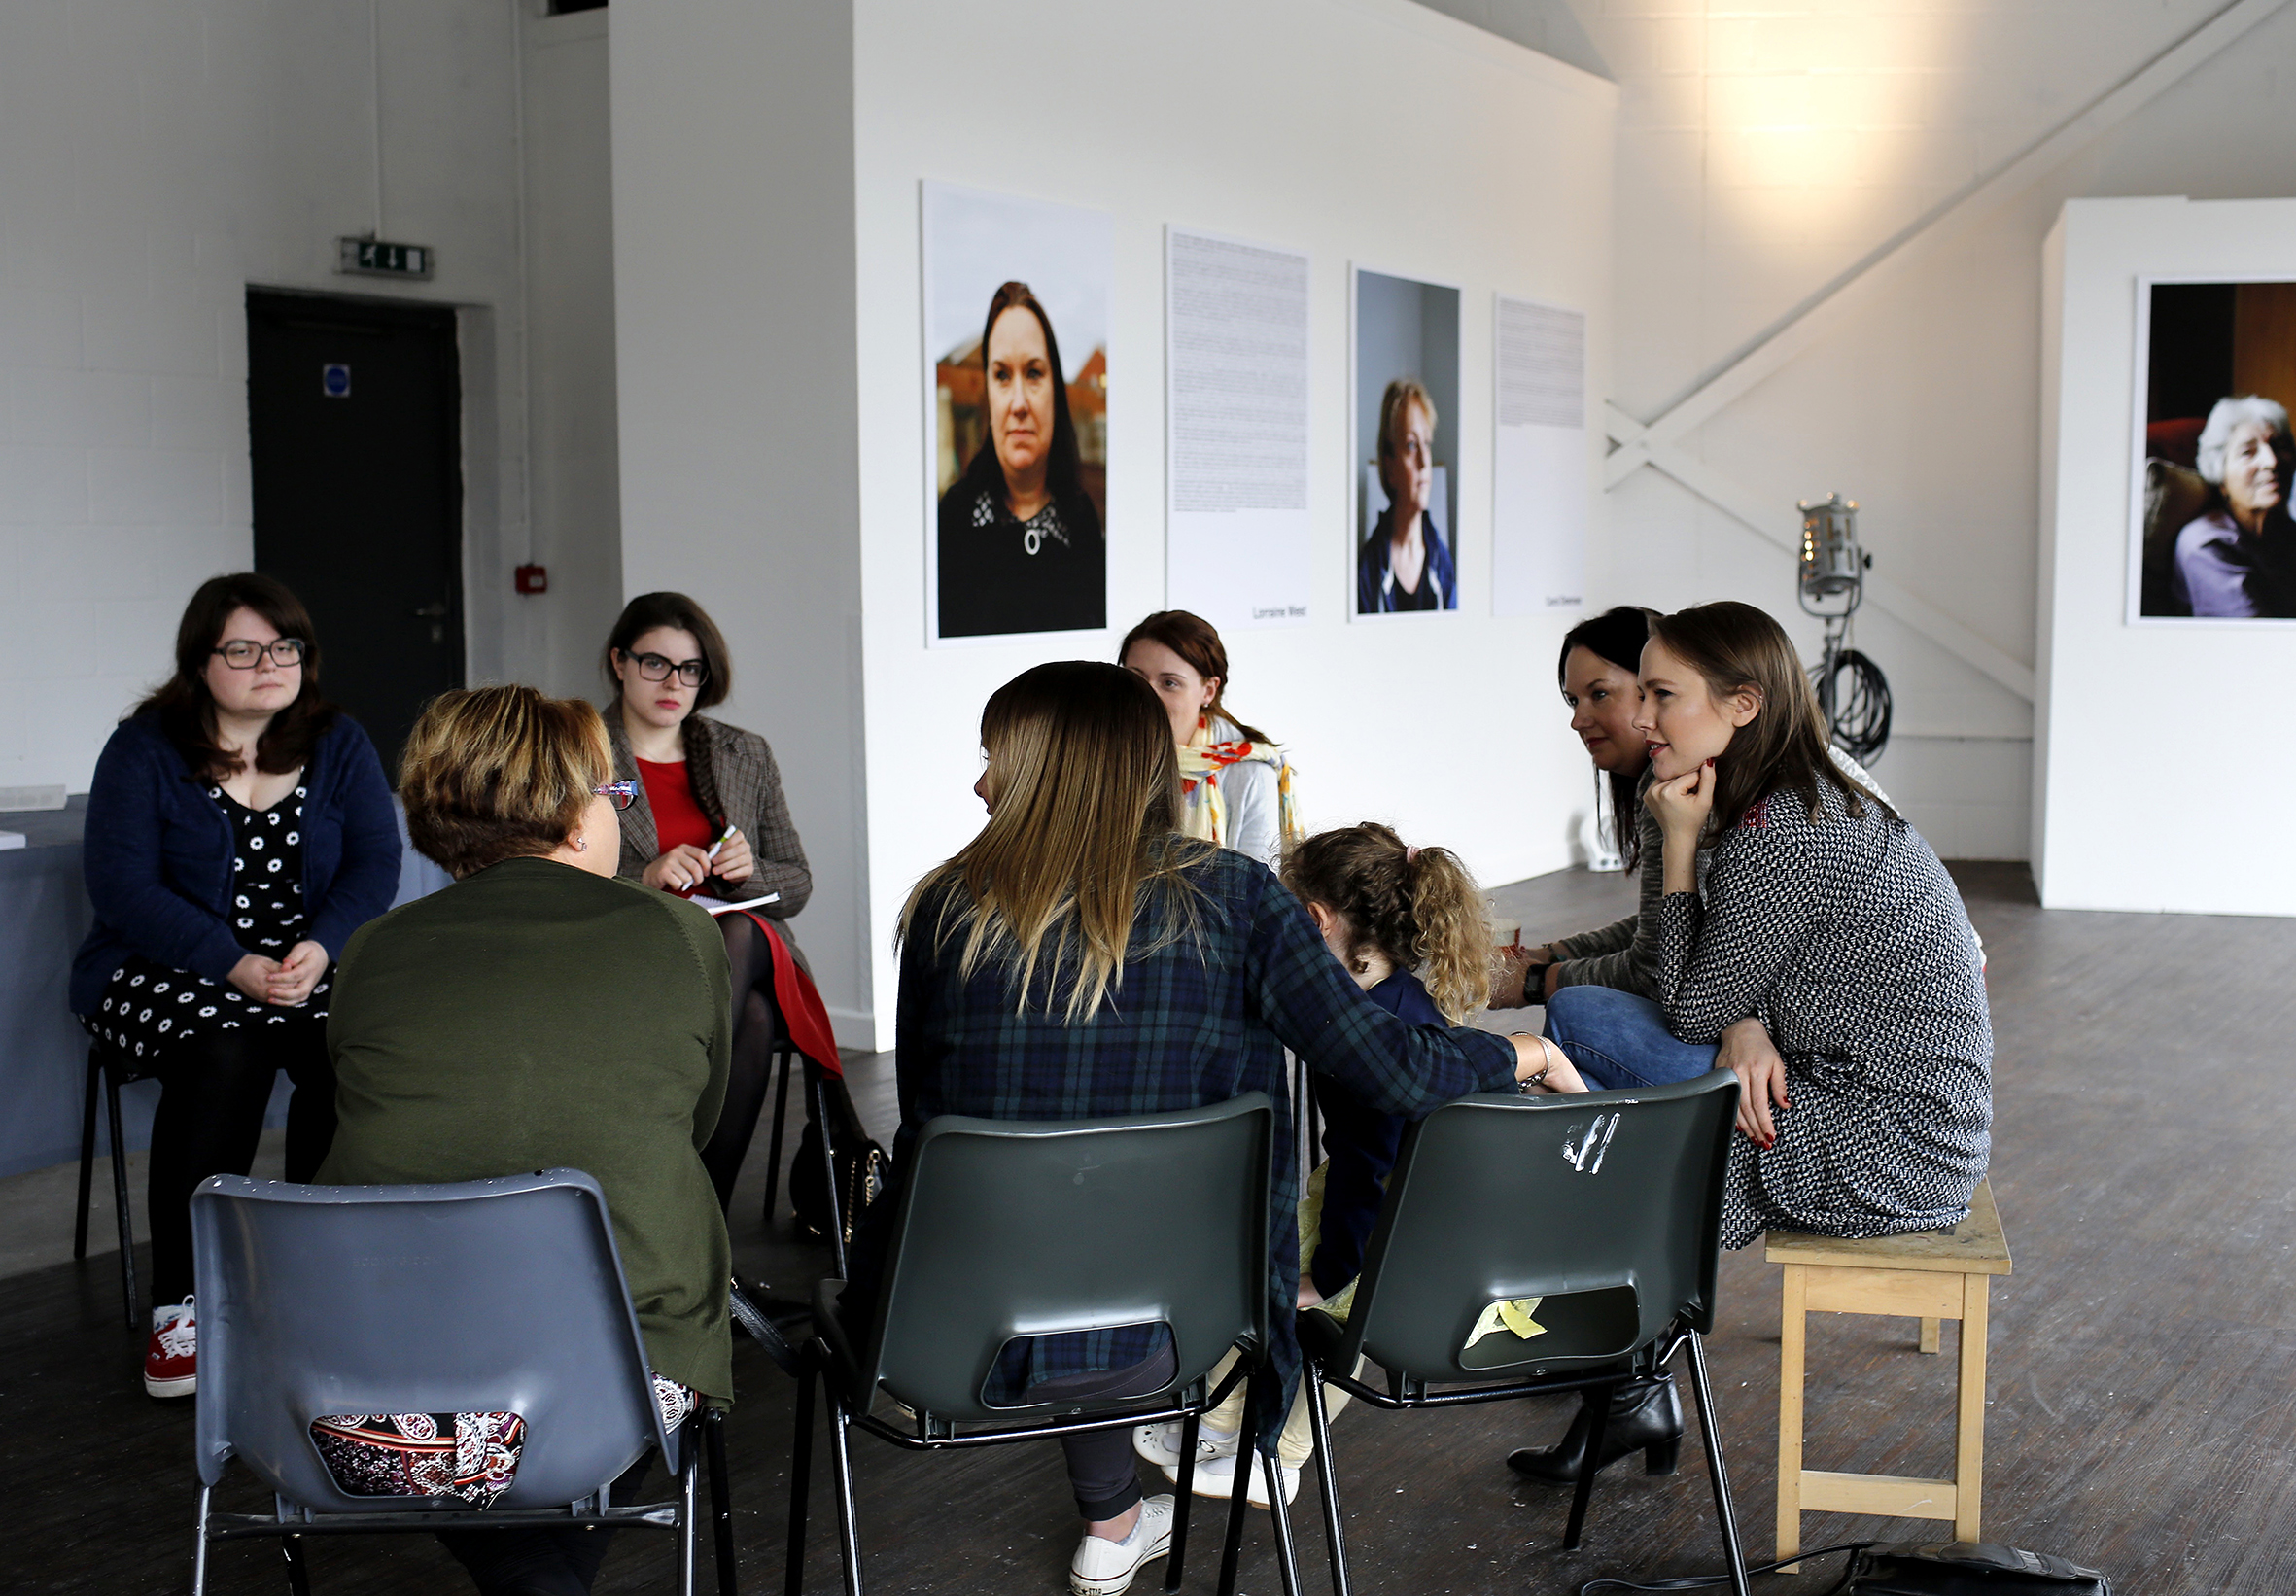 All of the women who were involved in the 'Women of Longbridge' project were invited to take part in a discussion about the project and to talk about what is happening now in Longbridge and its history.